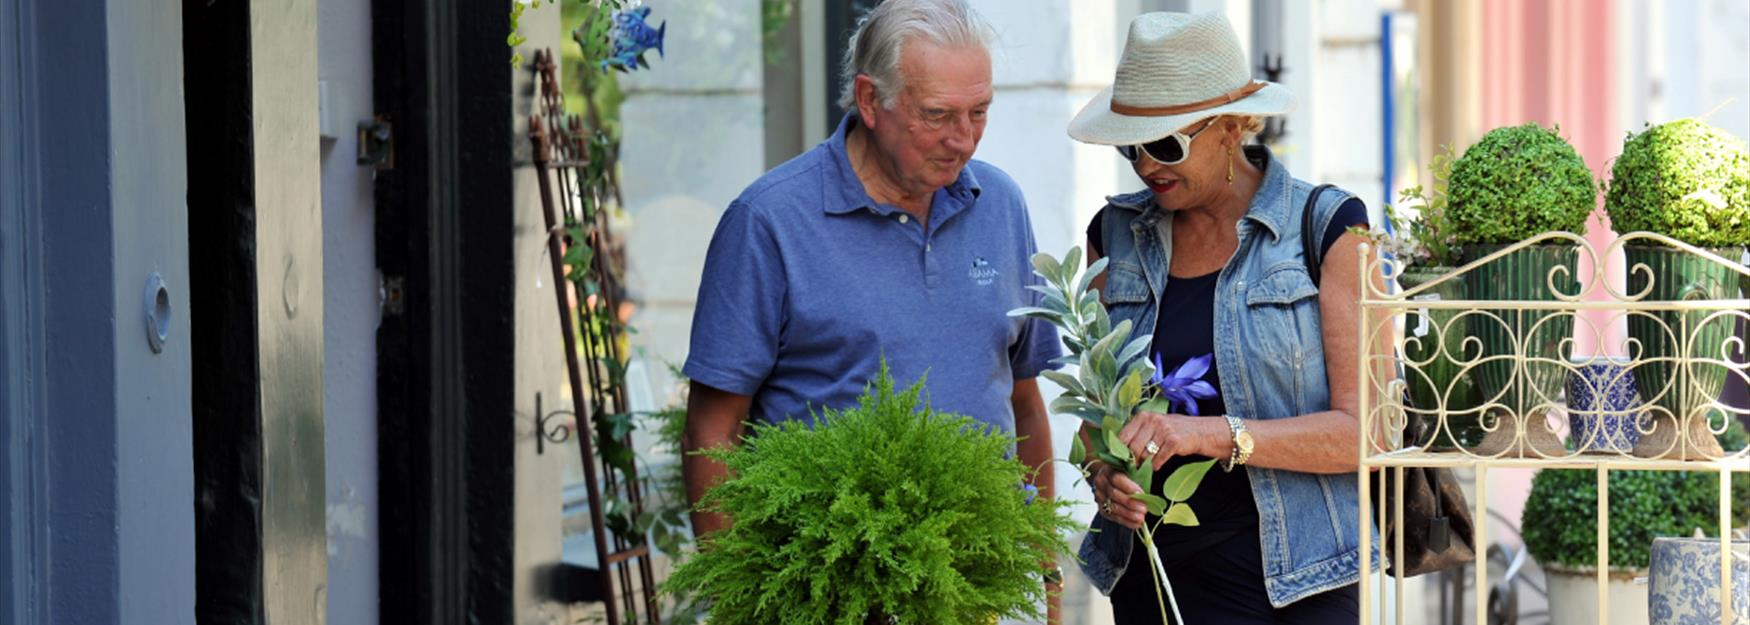 Couple browsing plants and planters outside a shop in Cheltenham